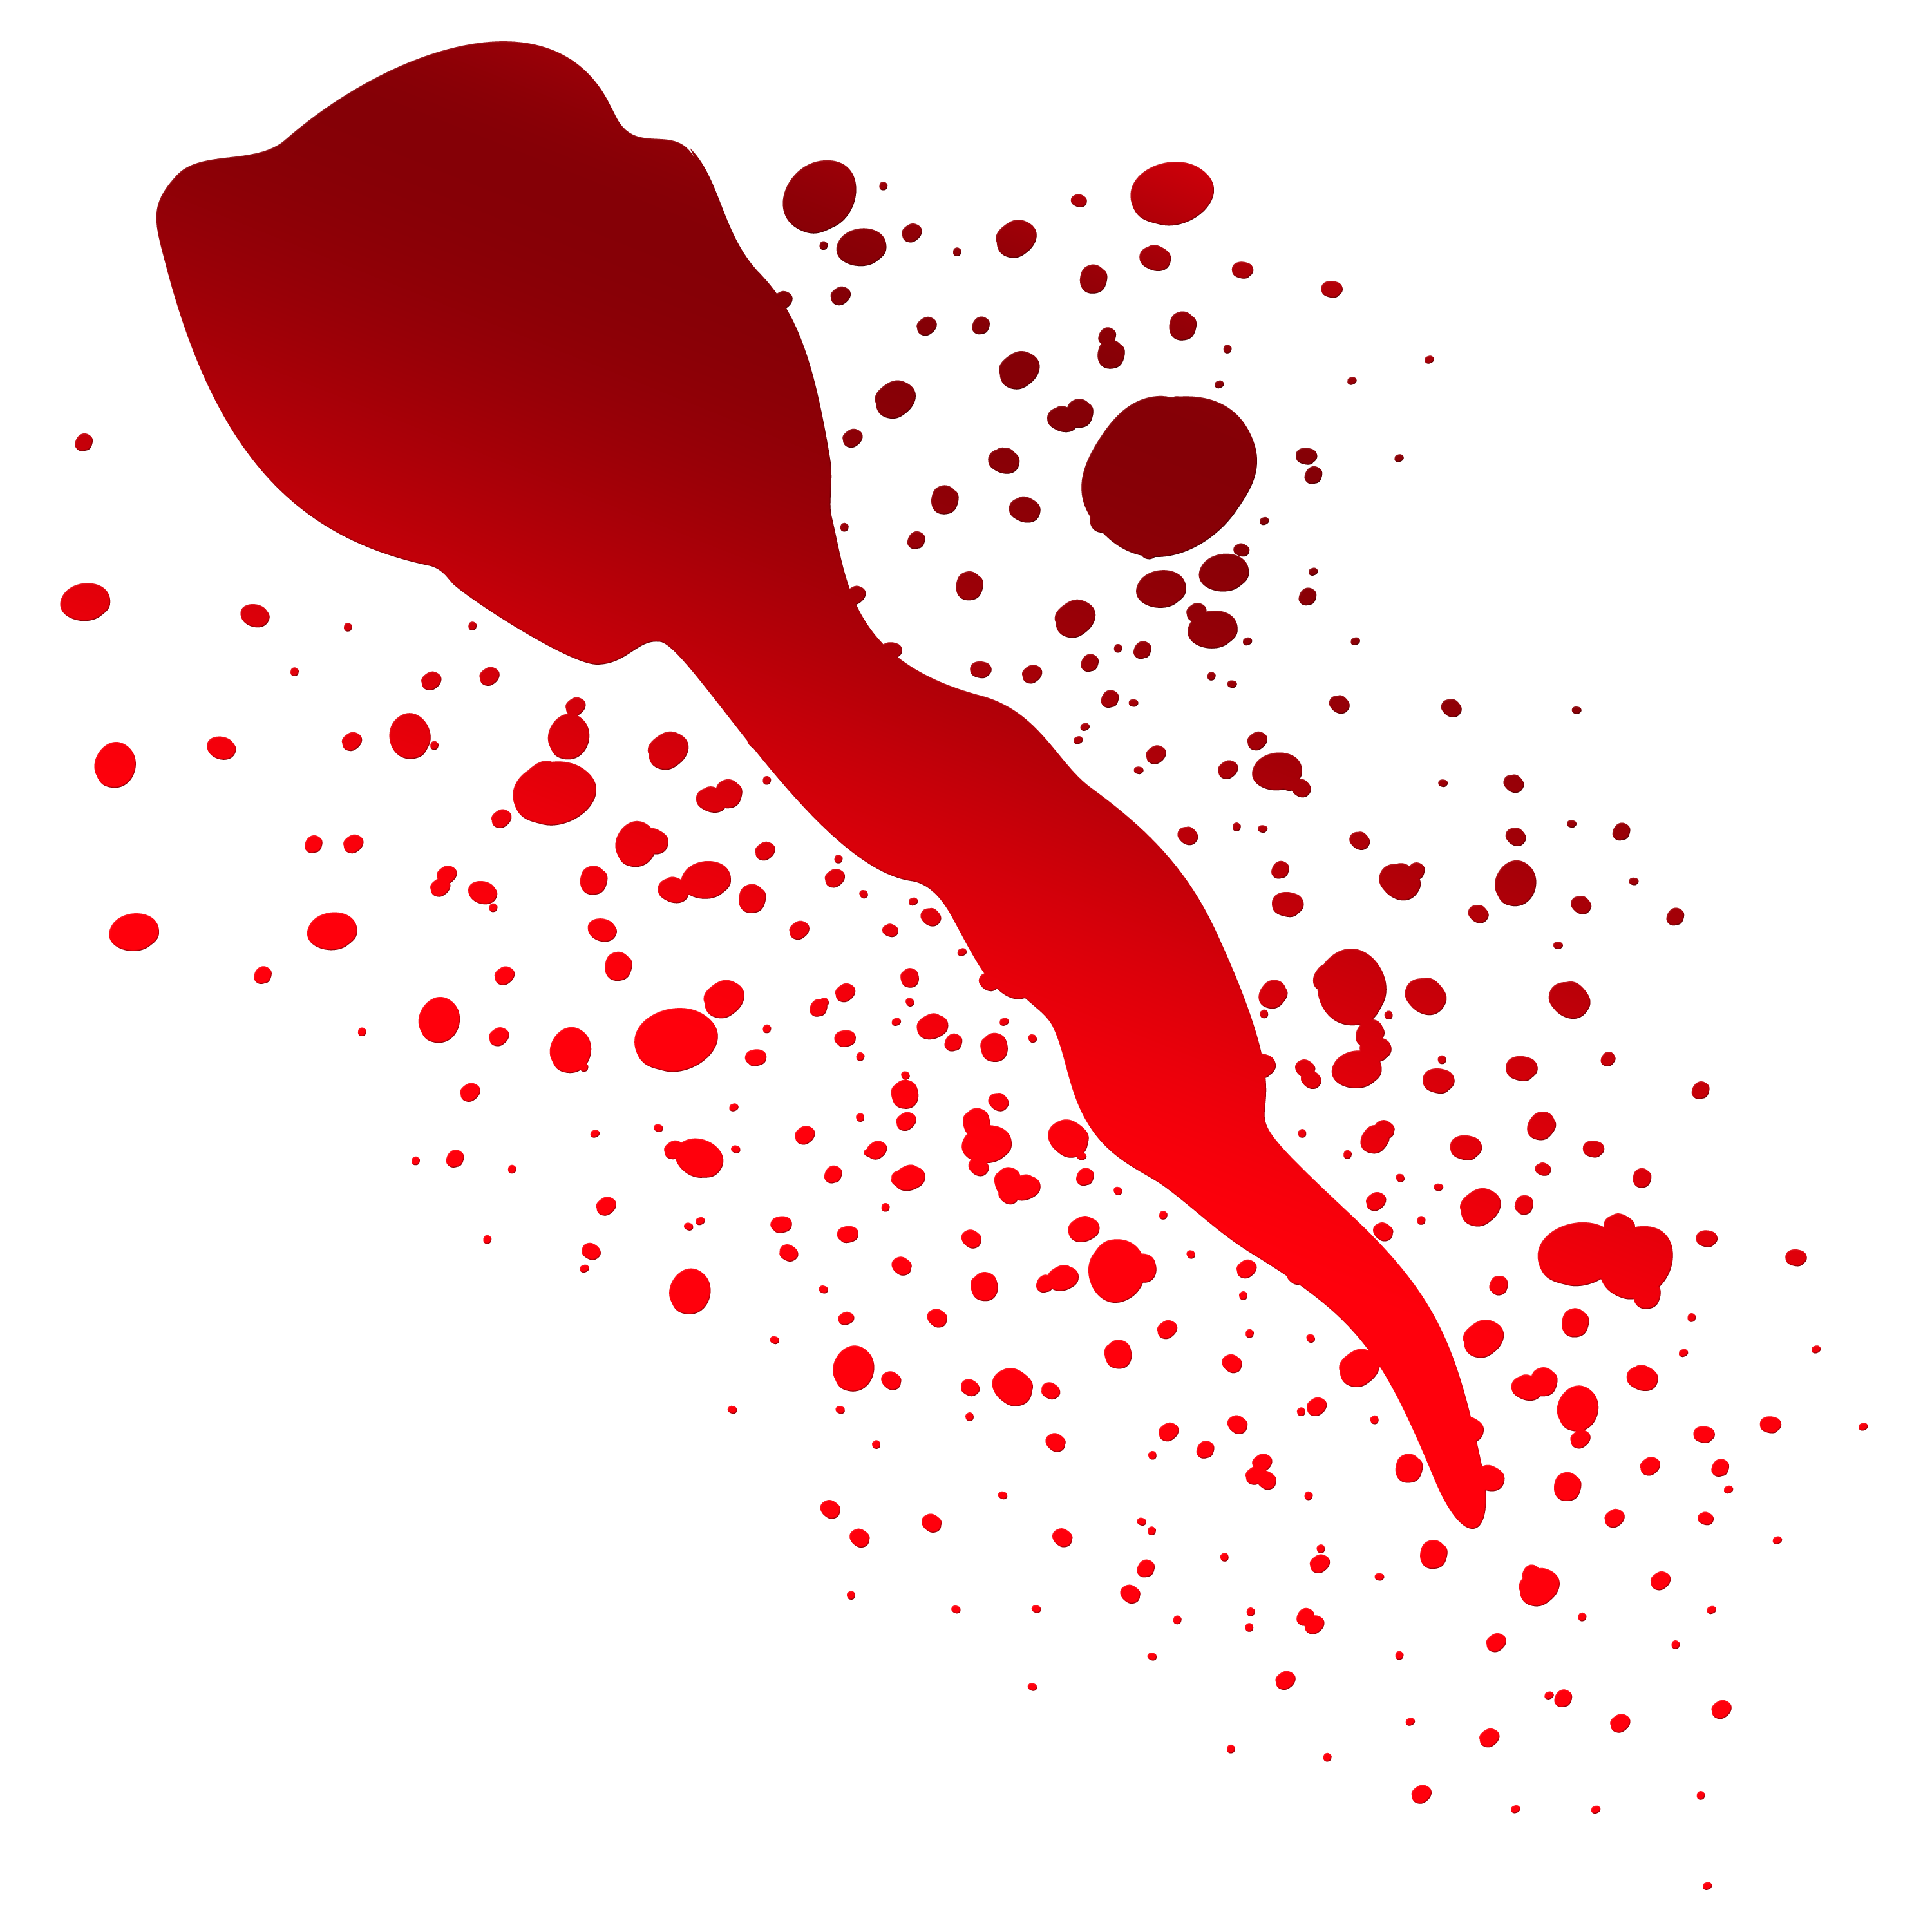 Red images pngpix transparent. Mouth blood png